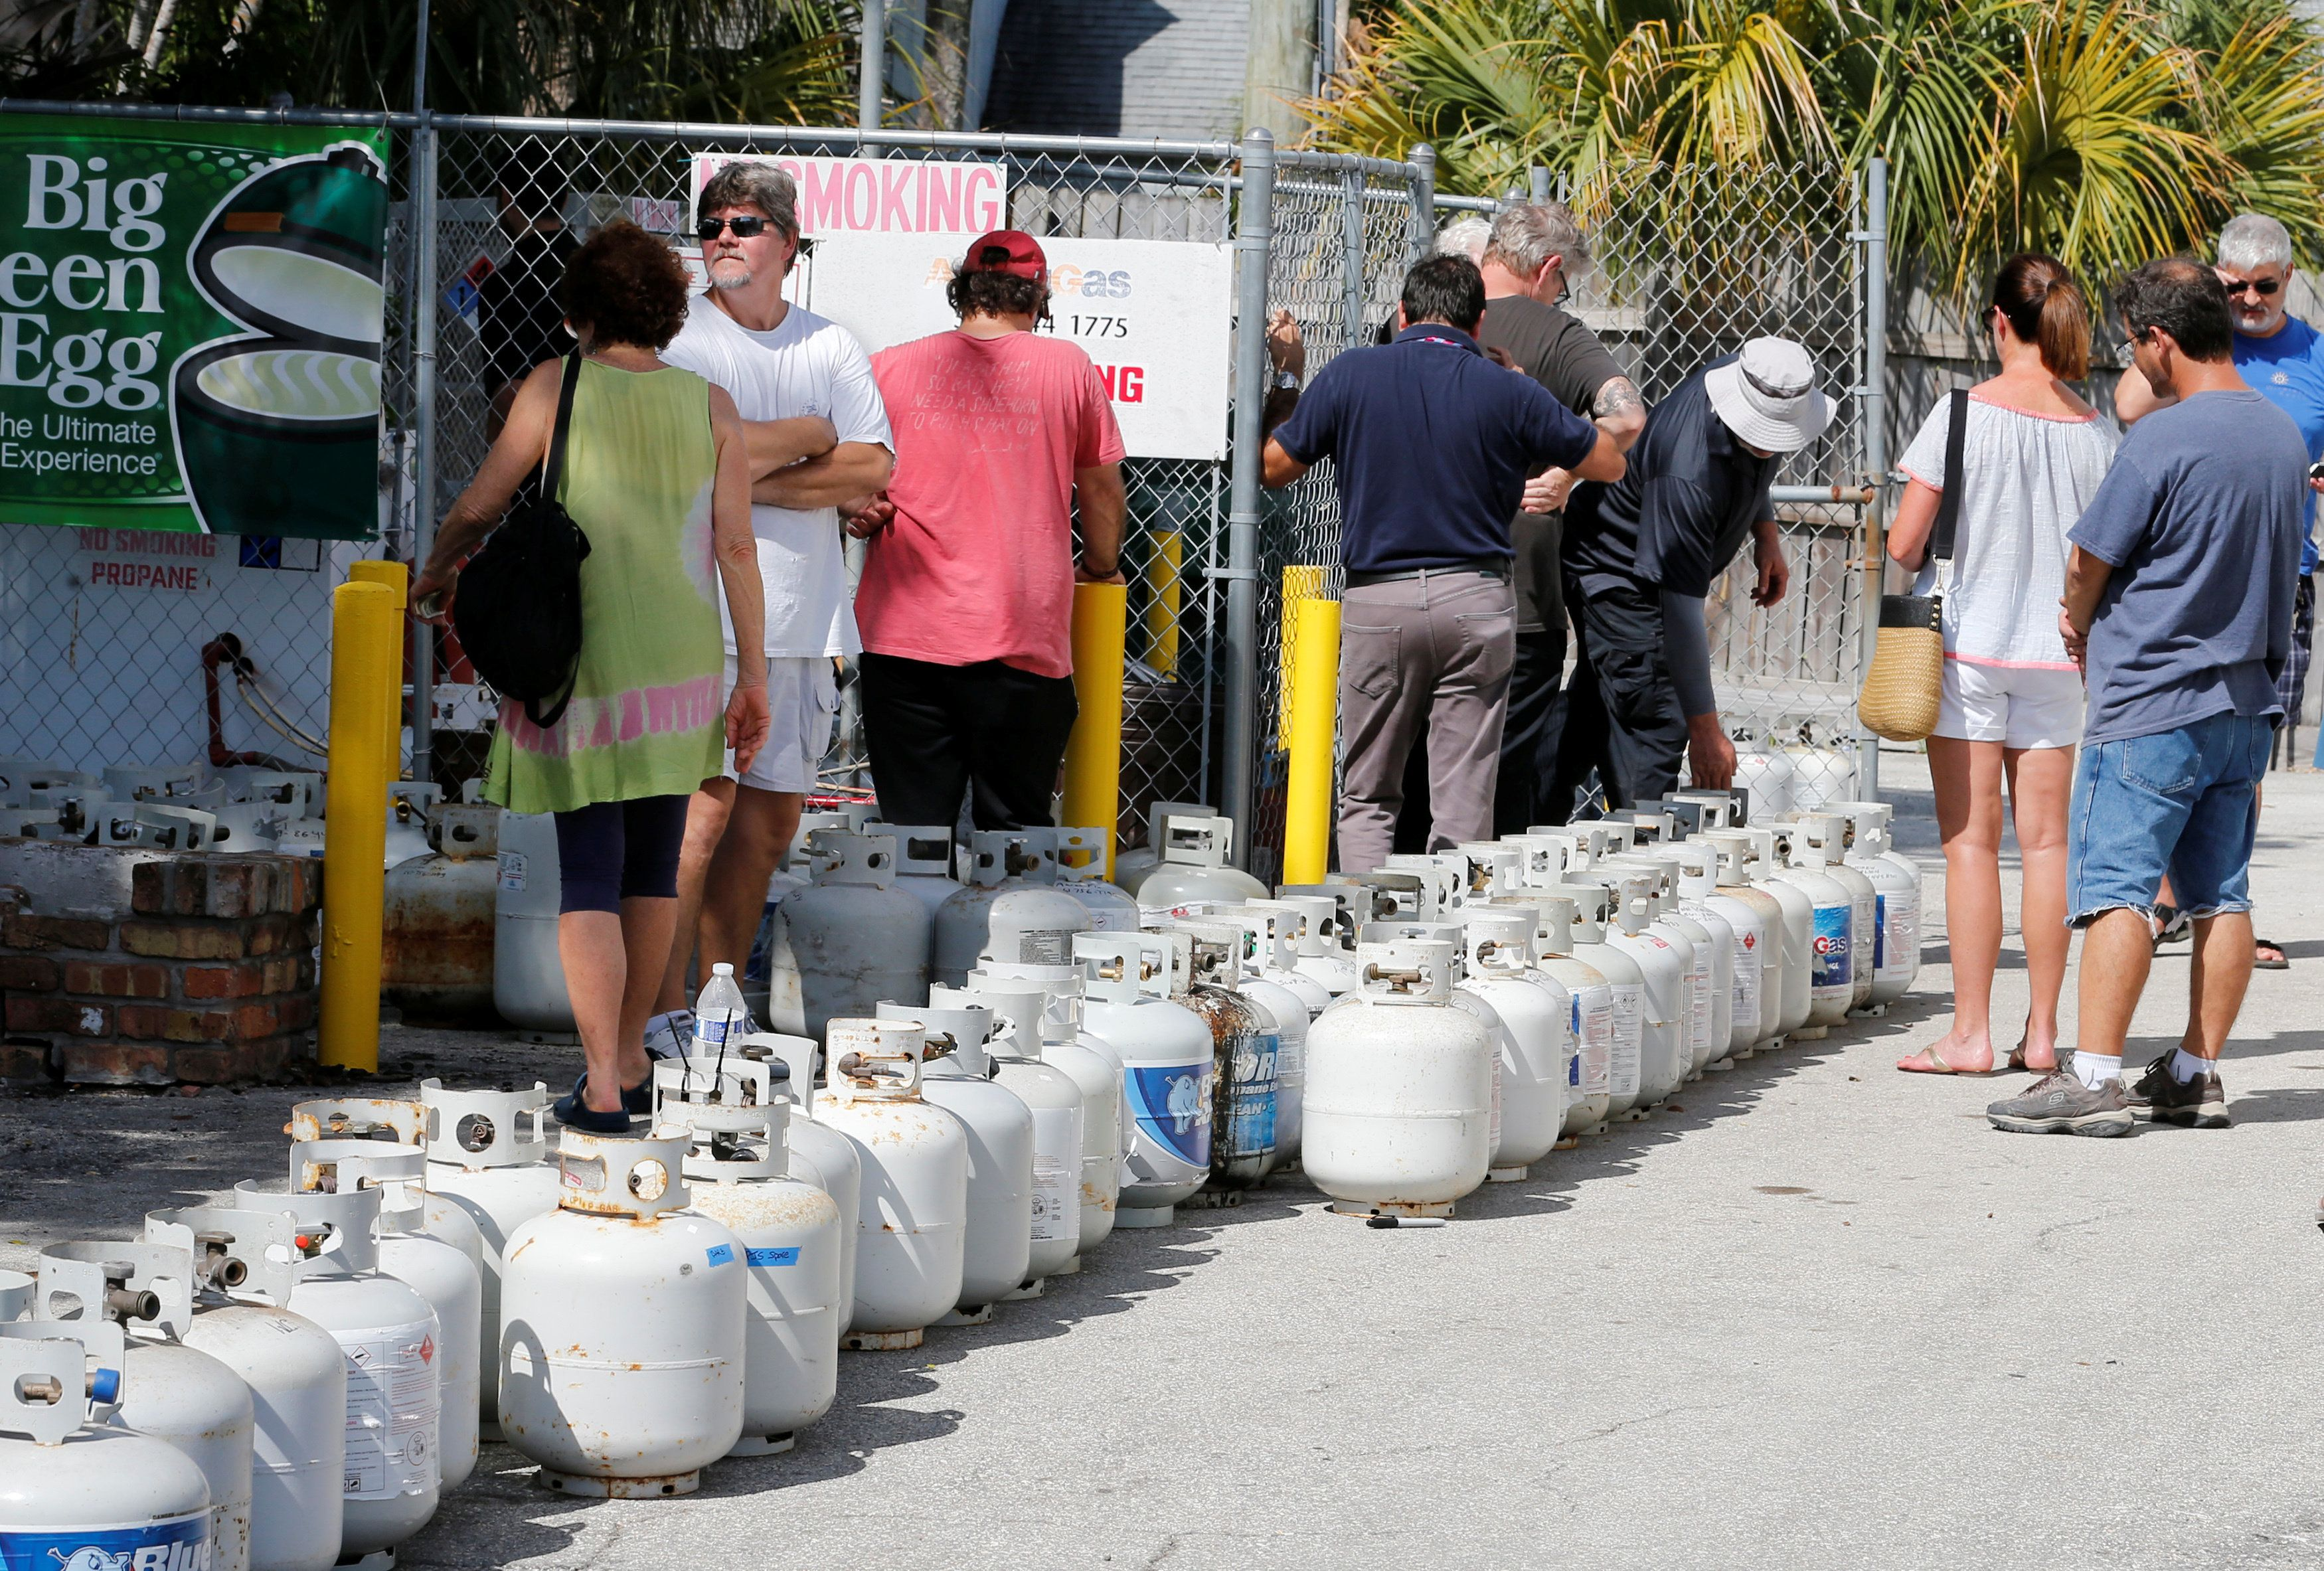 Residents wait in line to purchase propane gas at Lee's Barbecue Center in Boca Raton, Florida, as they continue to prepare for Hurricane Irma's expected arrival, September 6, 2017. REUTERS/Joe Skipper